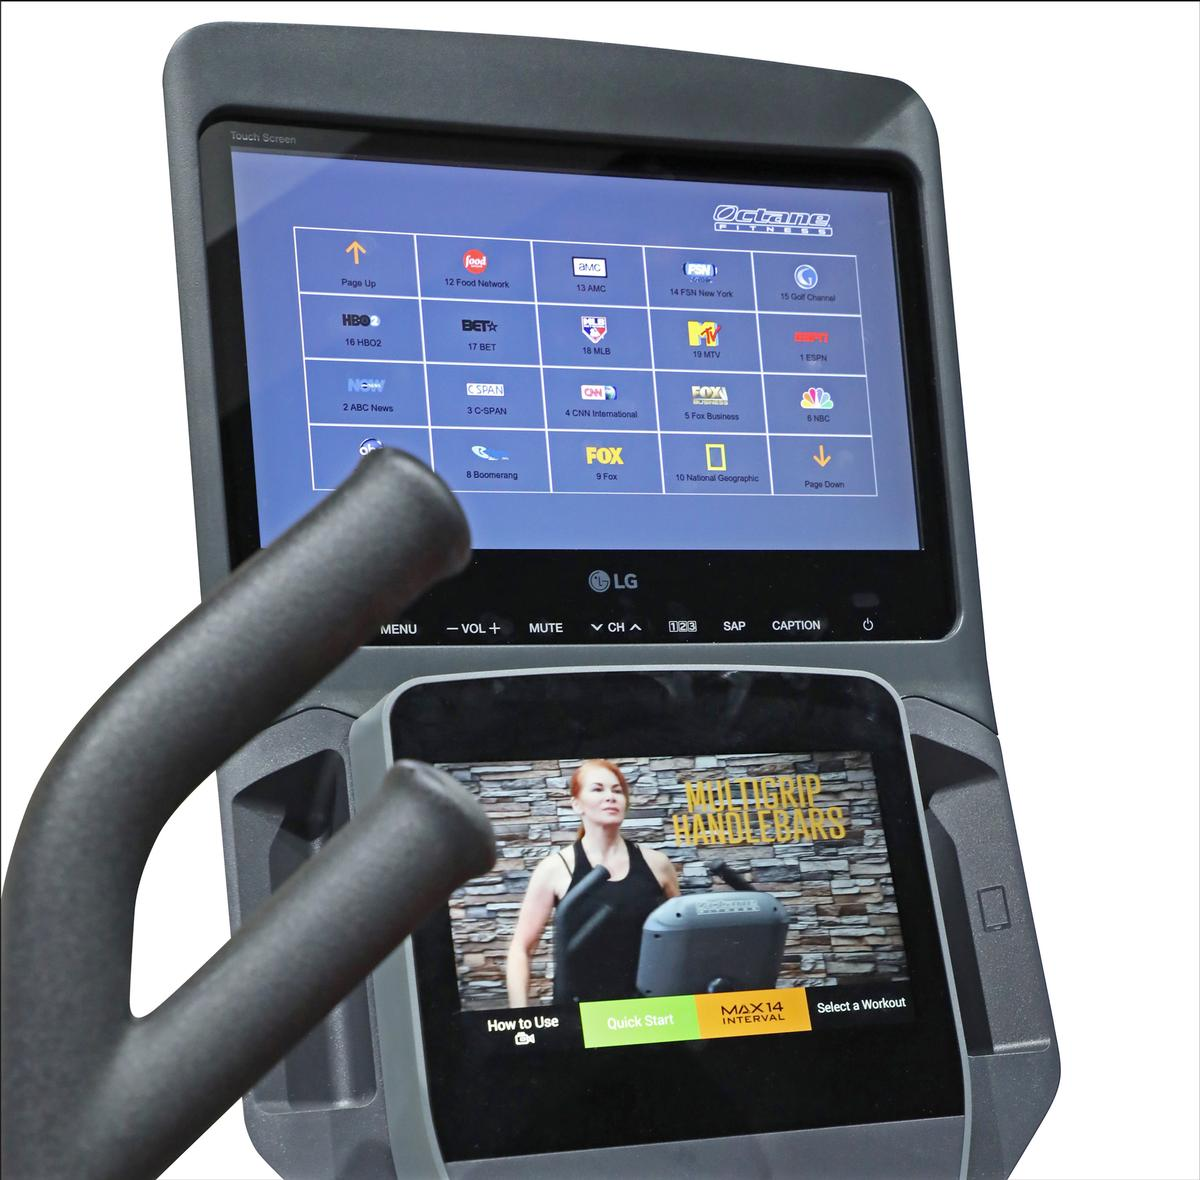 The display has a number of features specifically designed for fitness environments / LG